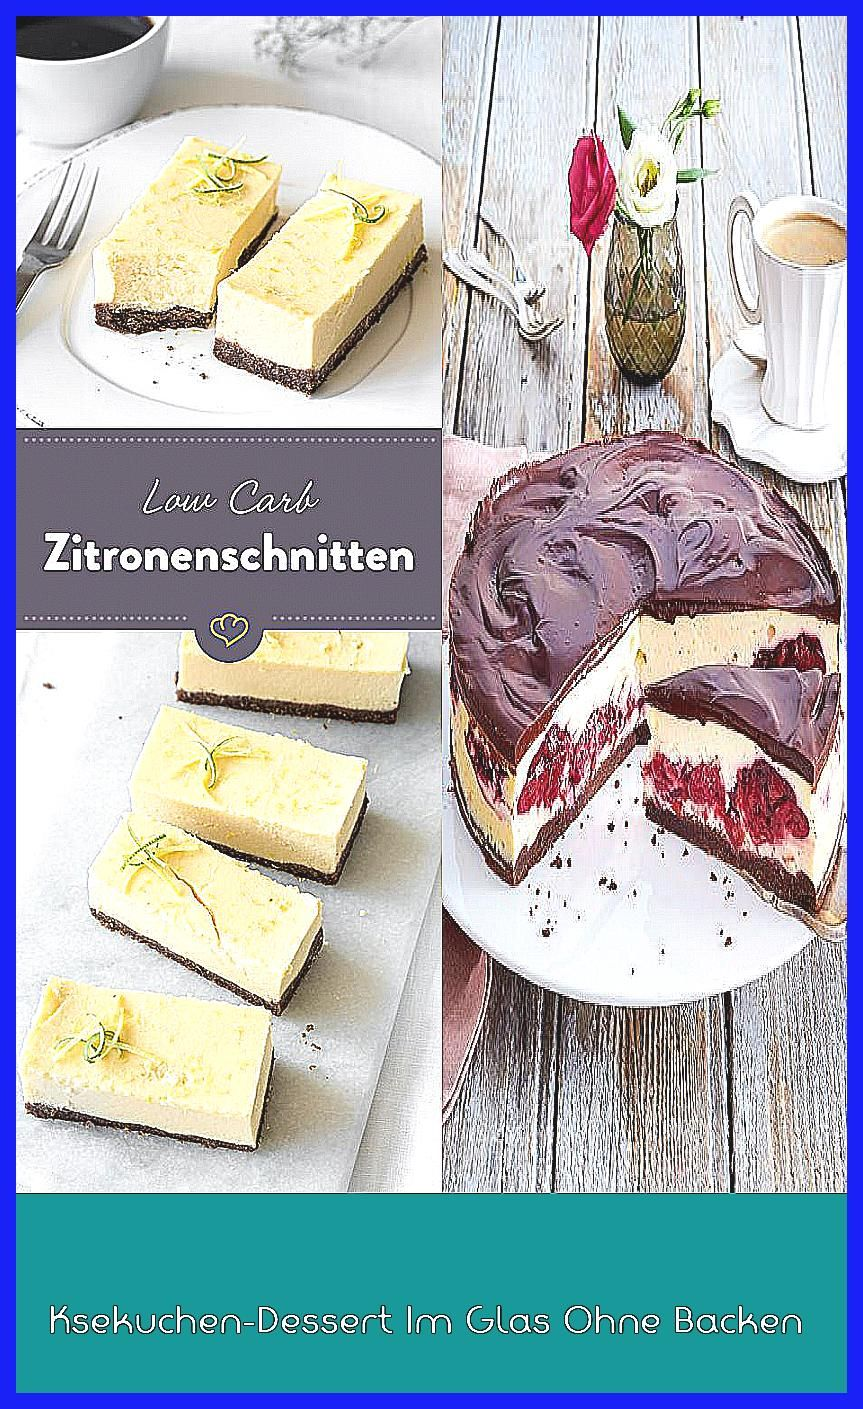 Photo of Ksekuchen-Dessert Im Glas Ohne Backen